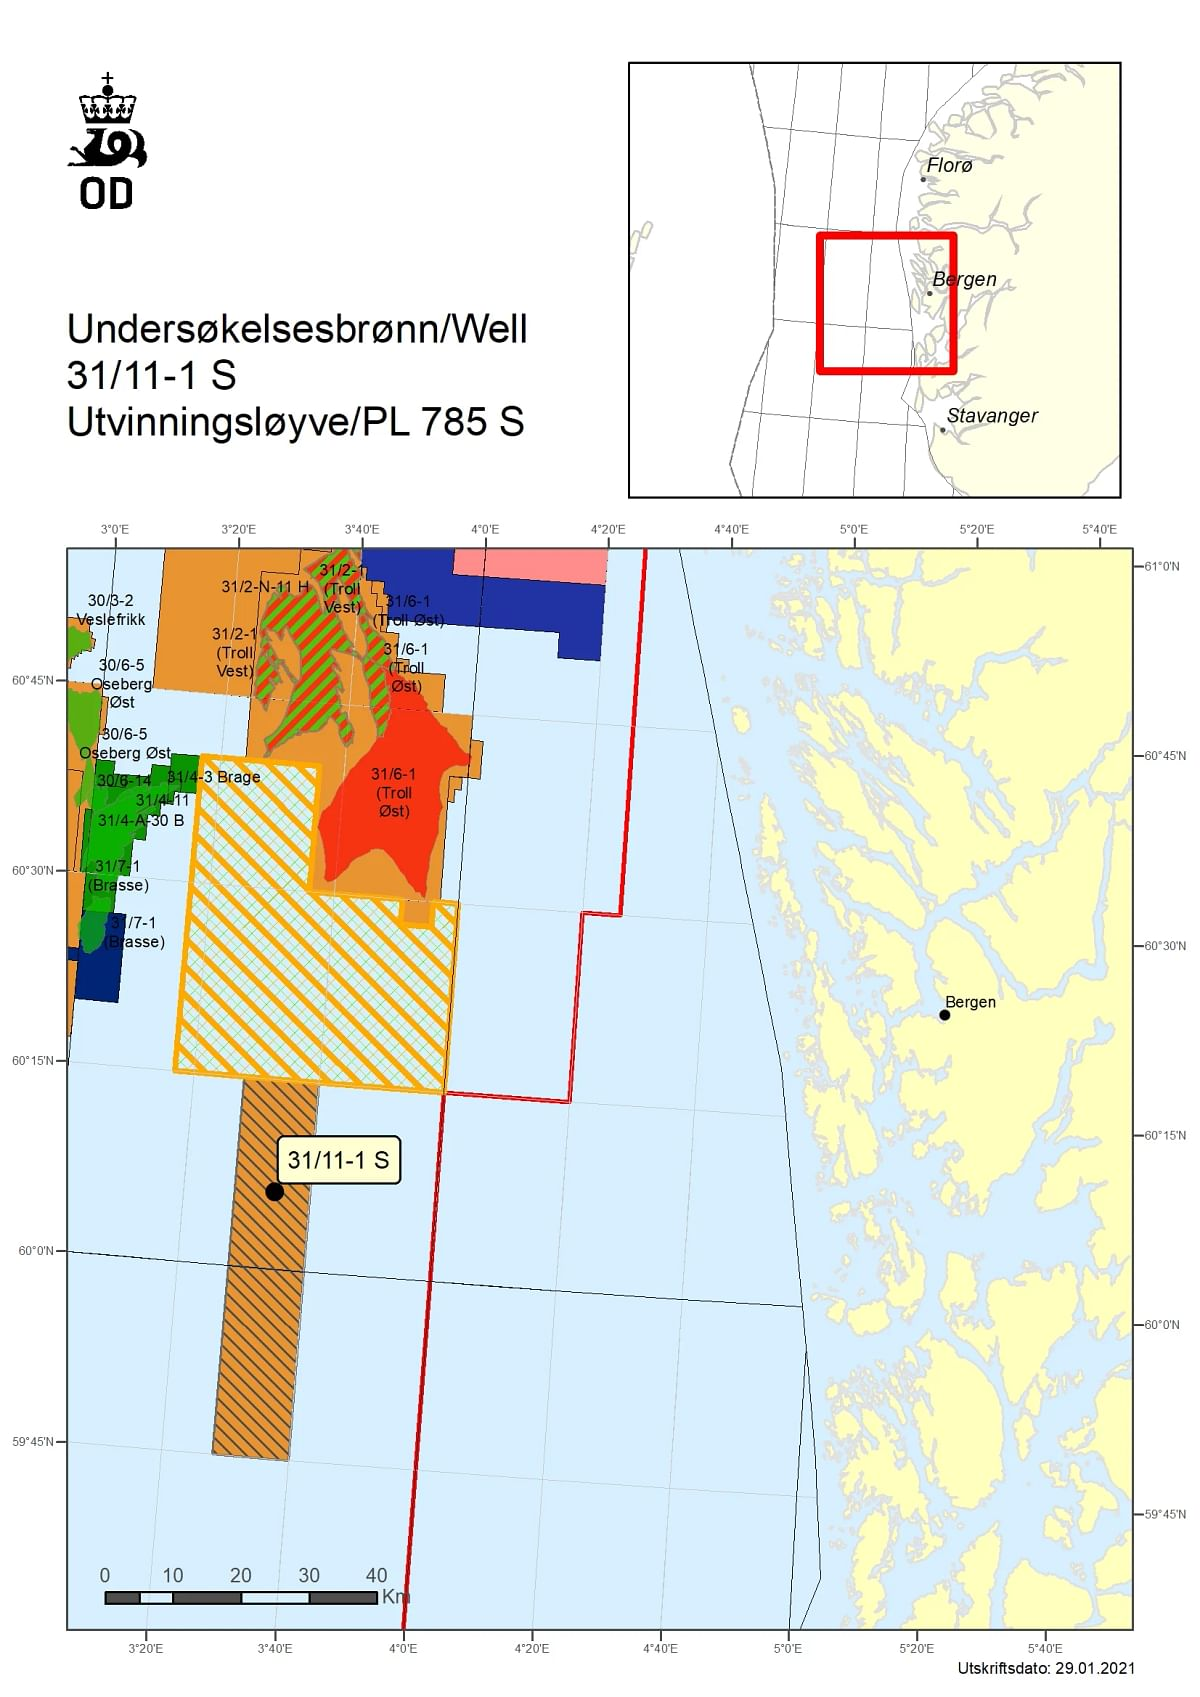 NPD Grants Drilling Permit to Equinor Energy